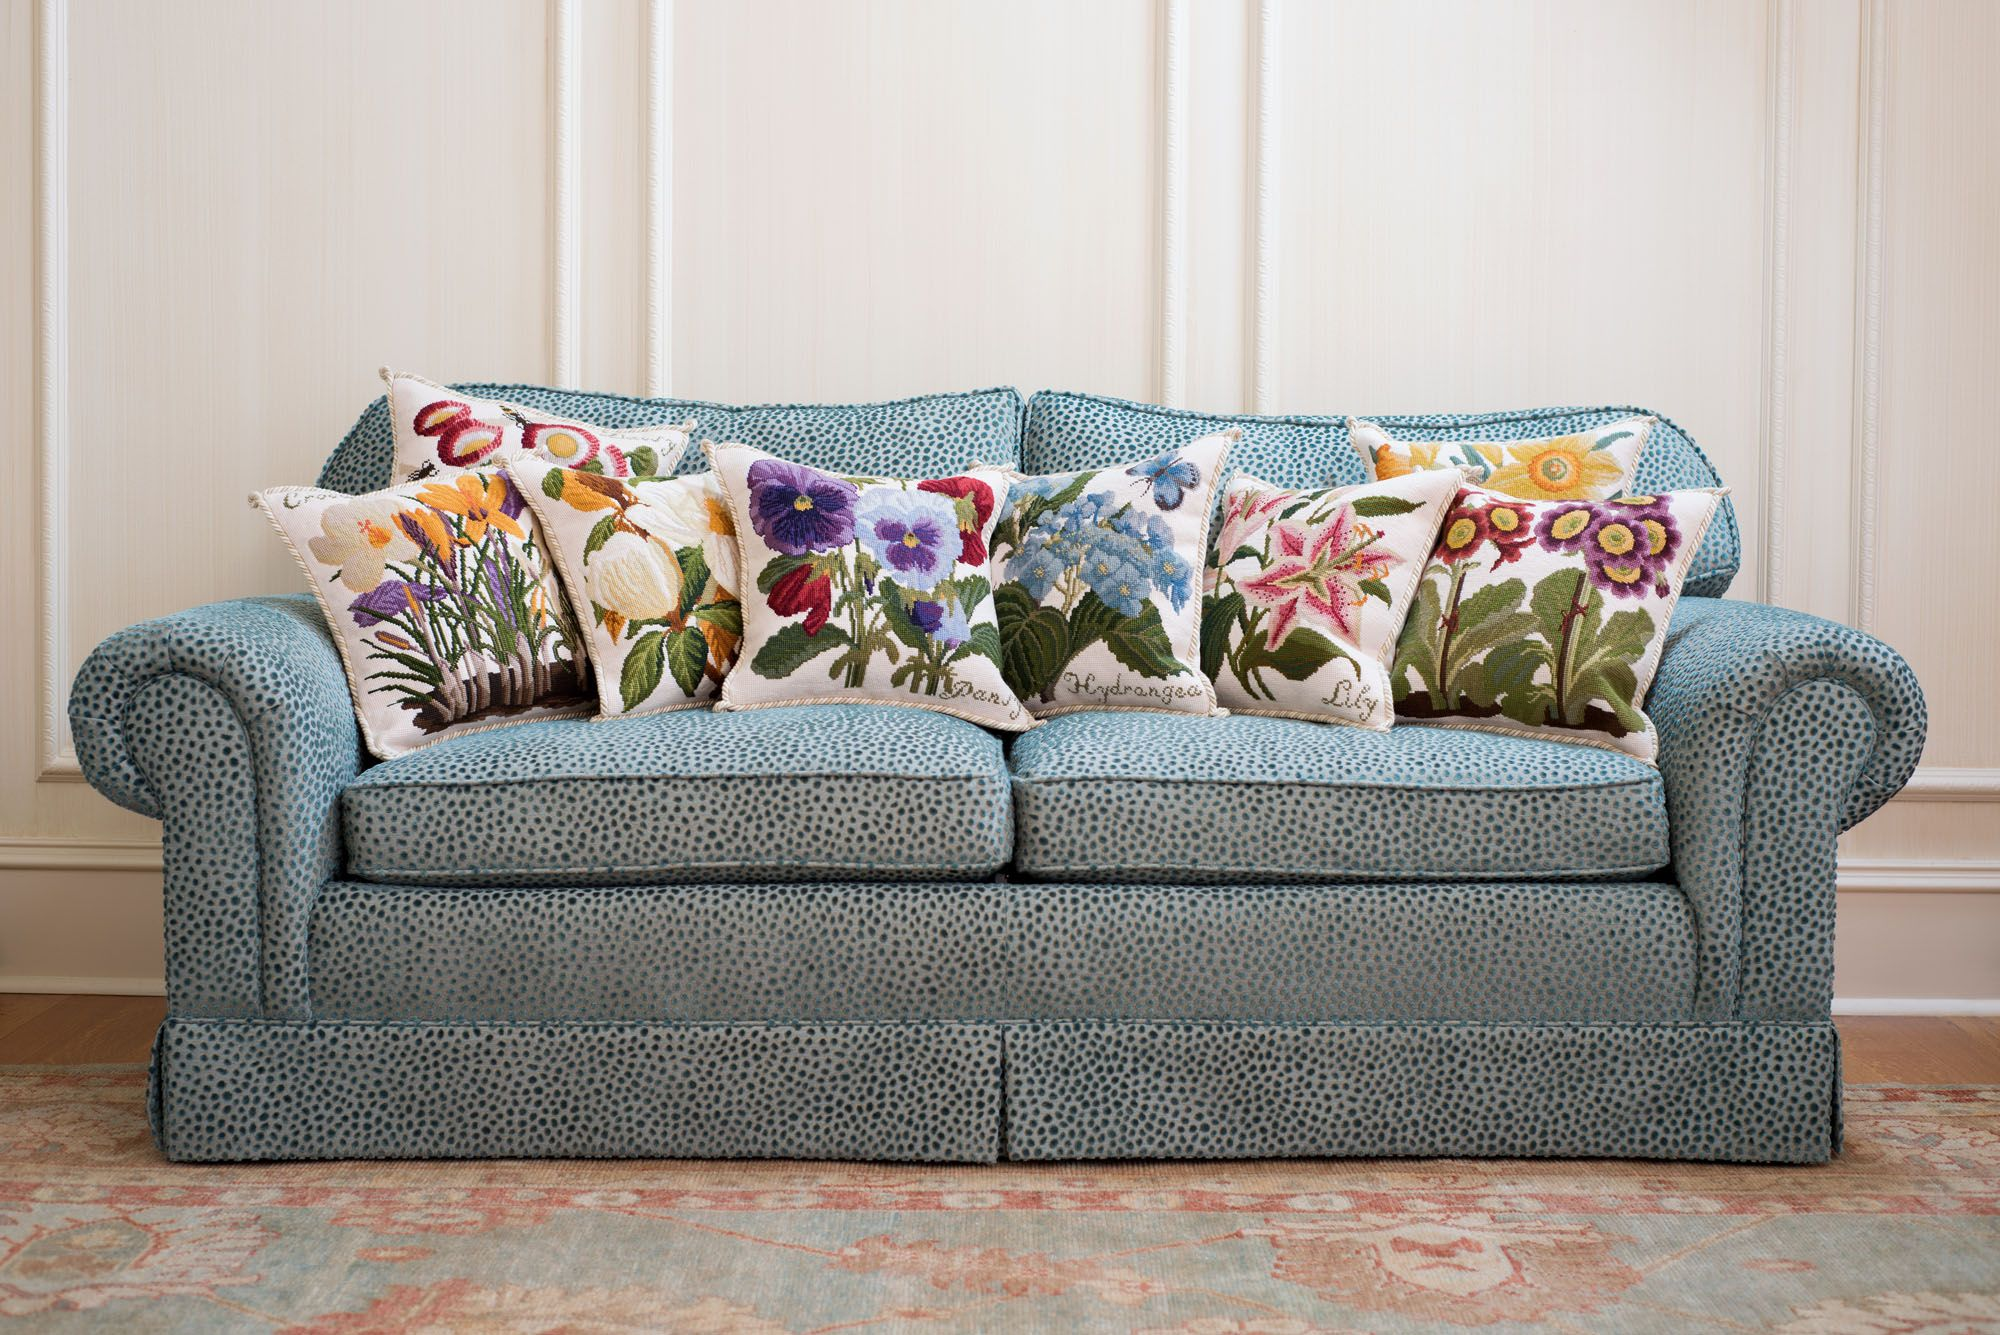 Elizabeth Bradley Home, luxury pillows